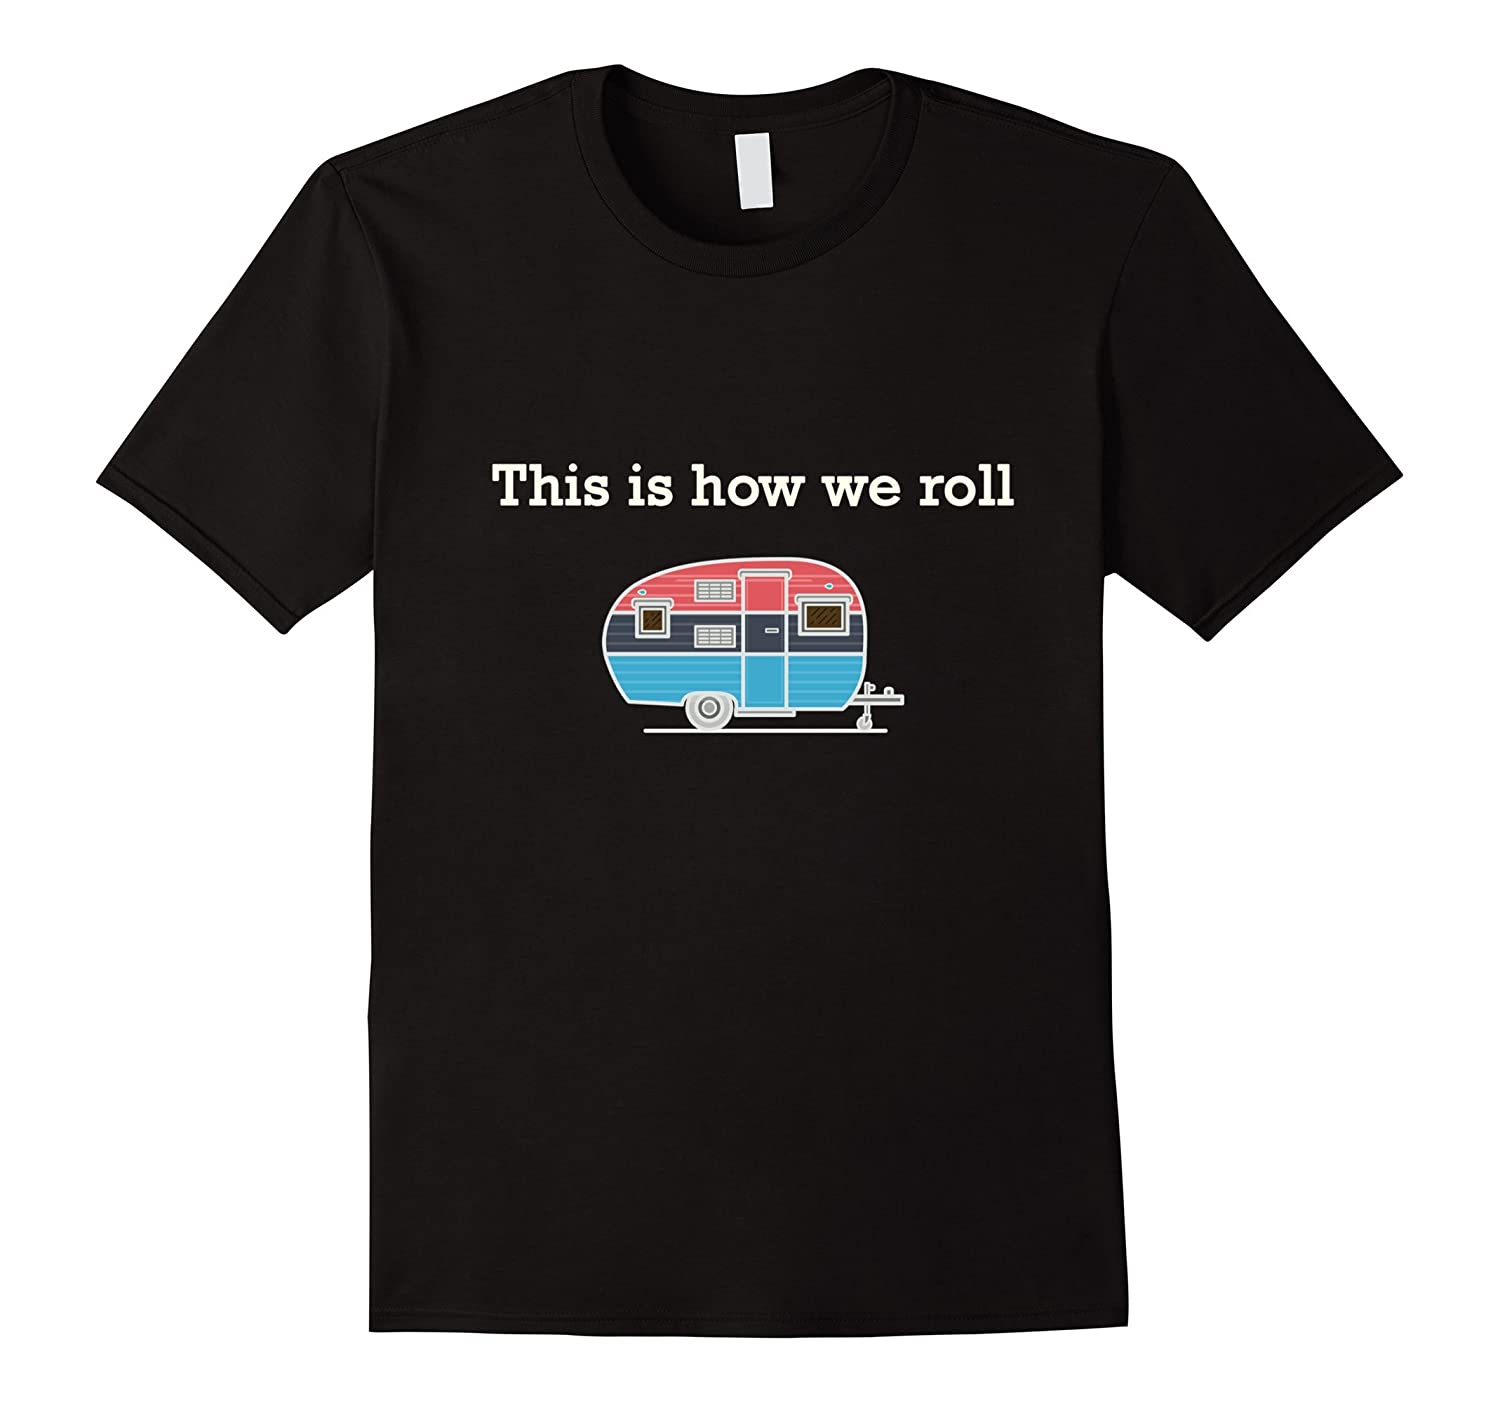 Funny Retro RV Camping T-shirt This is how we roll-Vaci